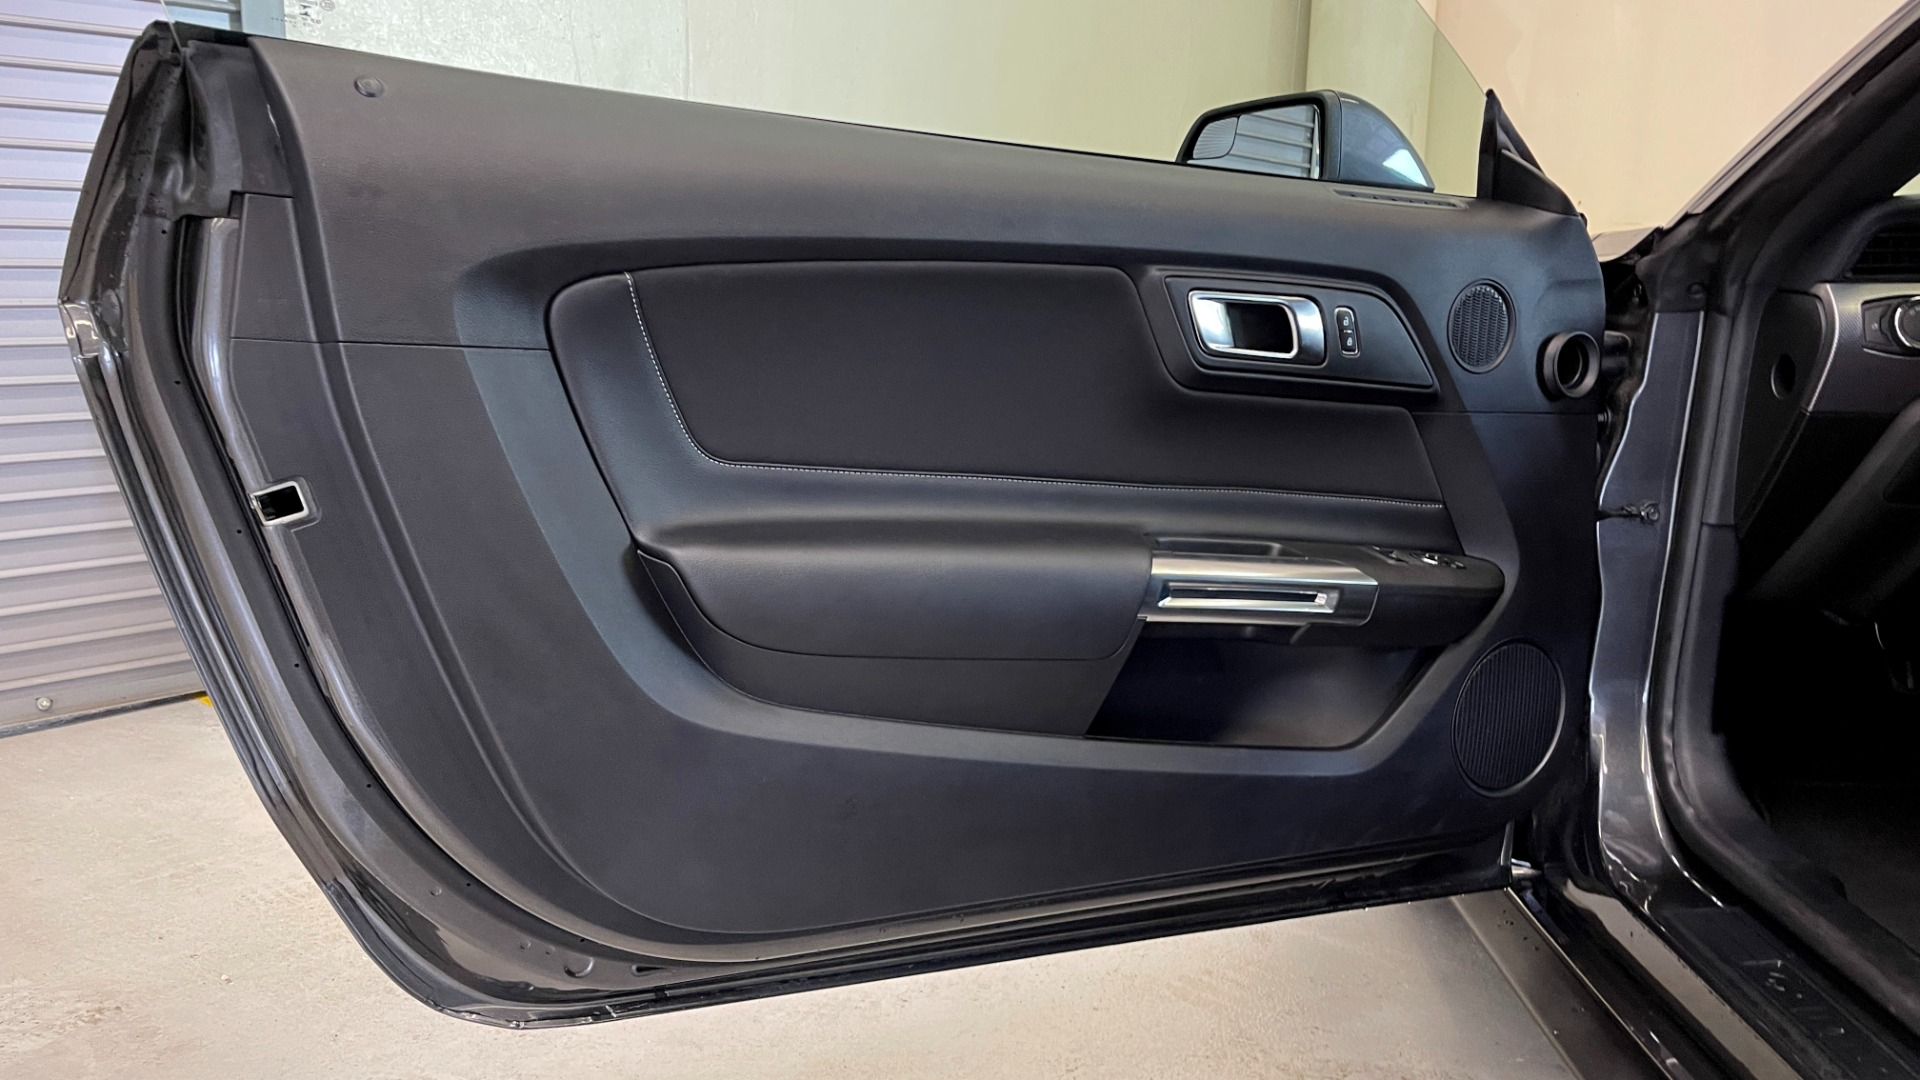 Used 2019 Ford MUSTANG ECOBOOST 2.3L / 10-SPD AUTO / SYNC3 8INCH SCREEN / TRACK APPS / REARVIEW for sale $31,795 at Formula Imports in Charlotte NC 28227 31